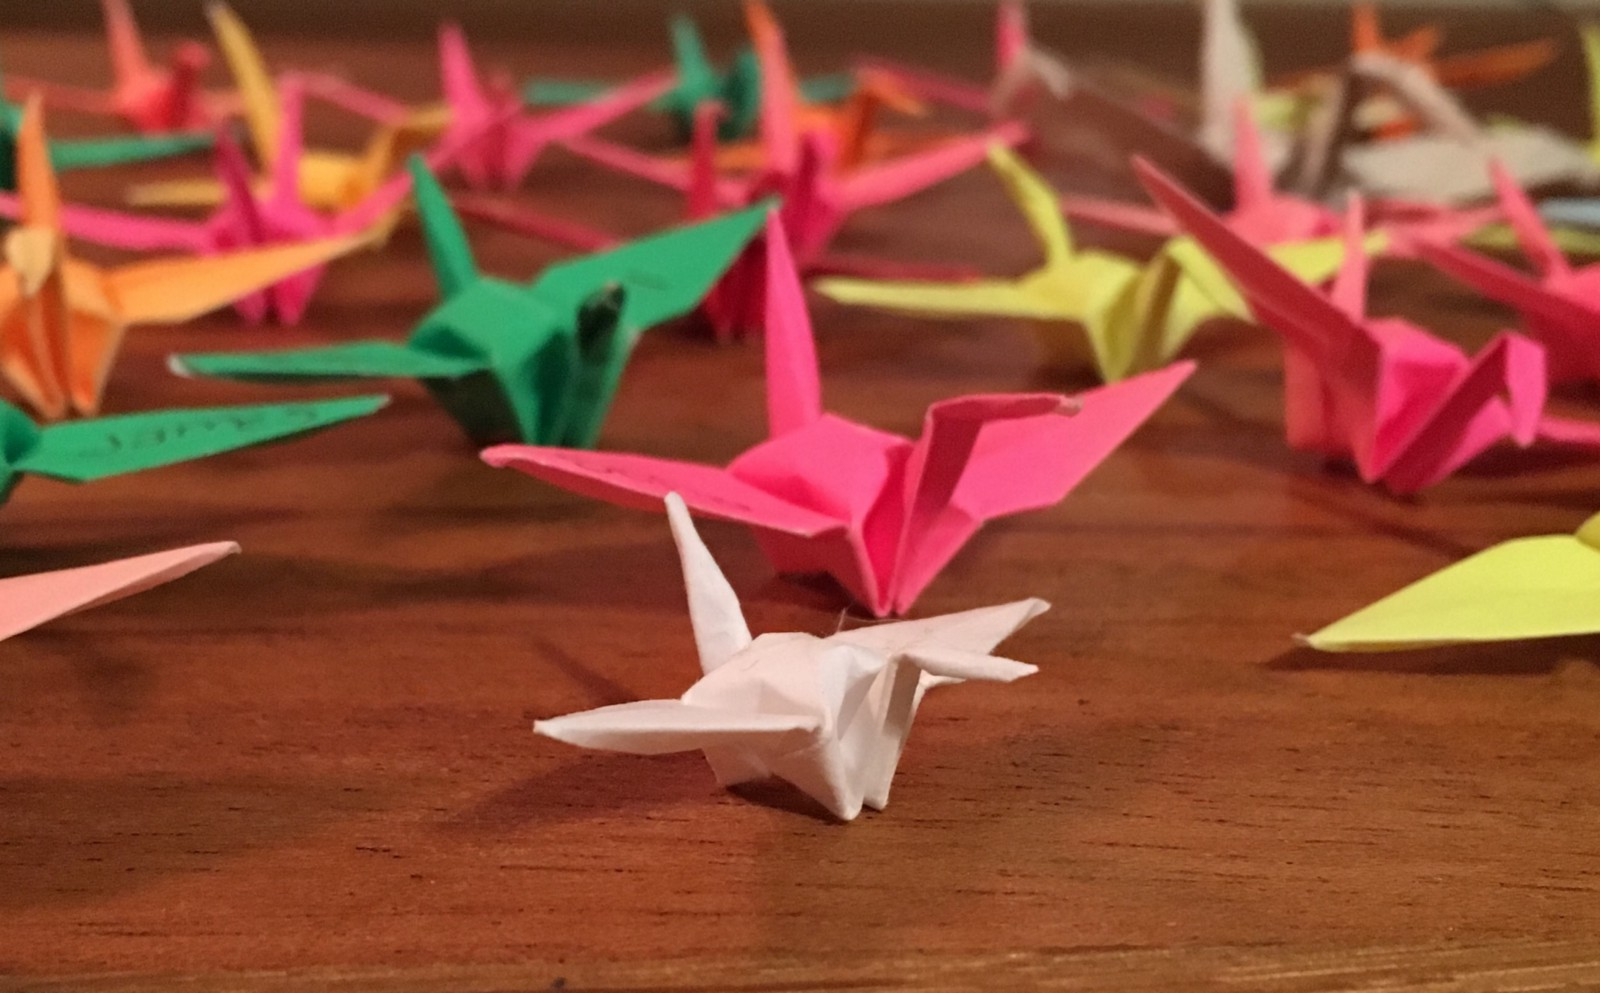 An Origami Crane Is One Of Only Two Things I Can Fold In The World Art Remember Being Quite Pleased With Myself When Finally Managed To Make